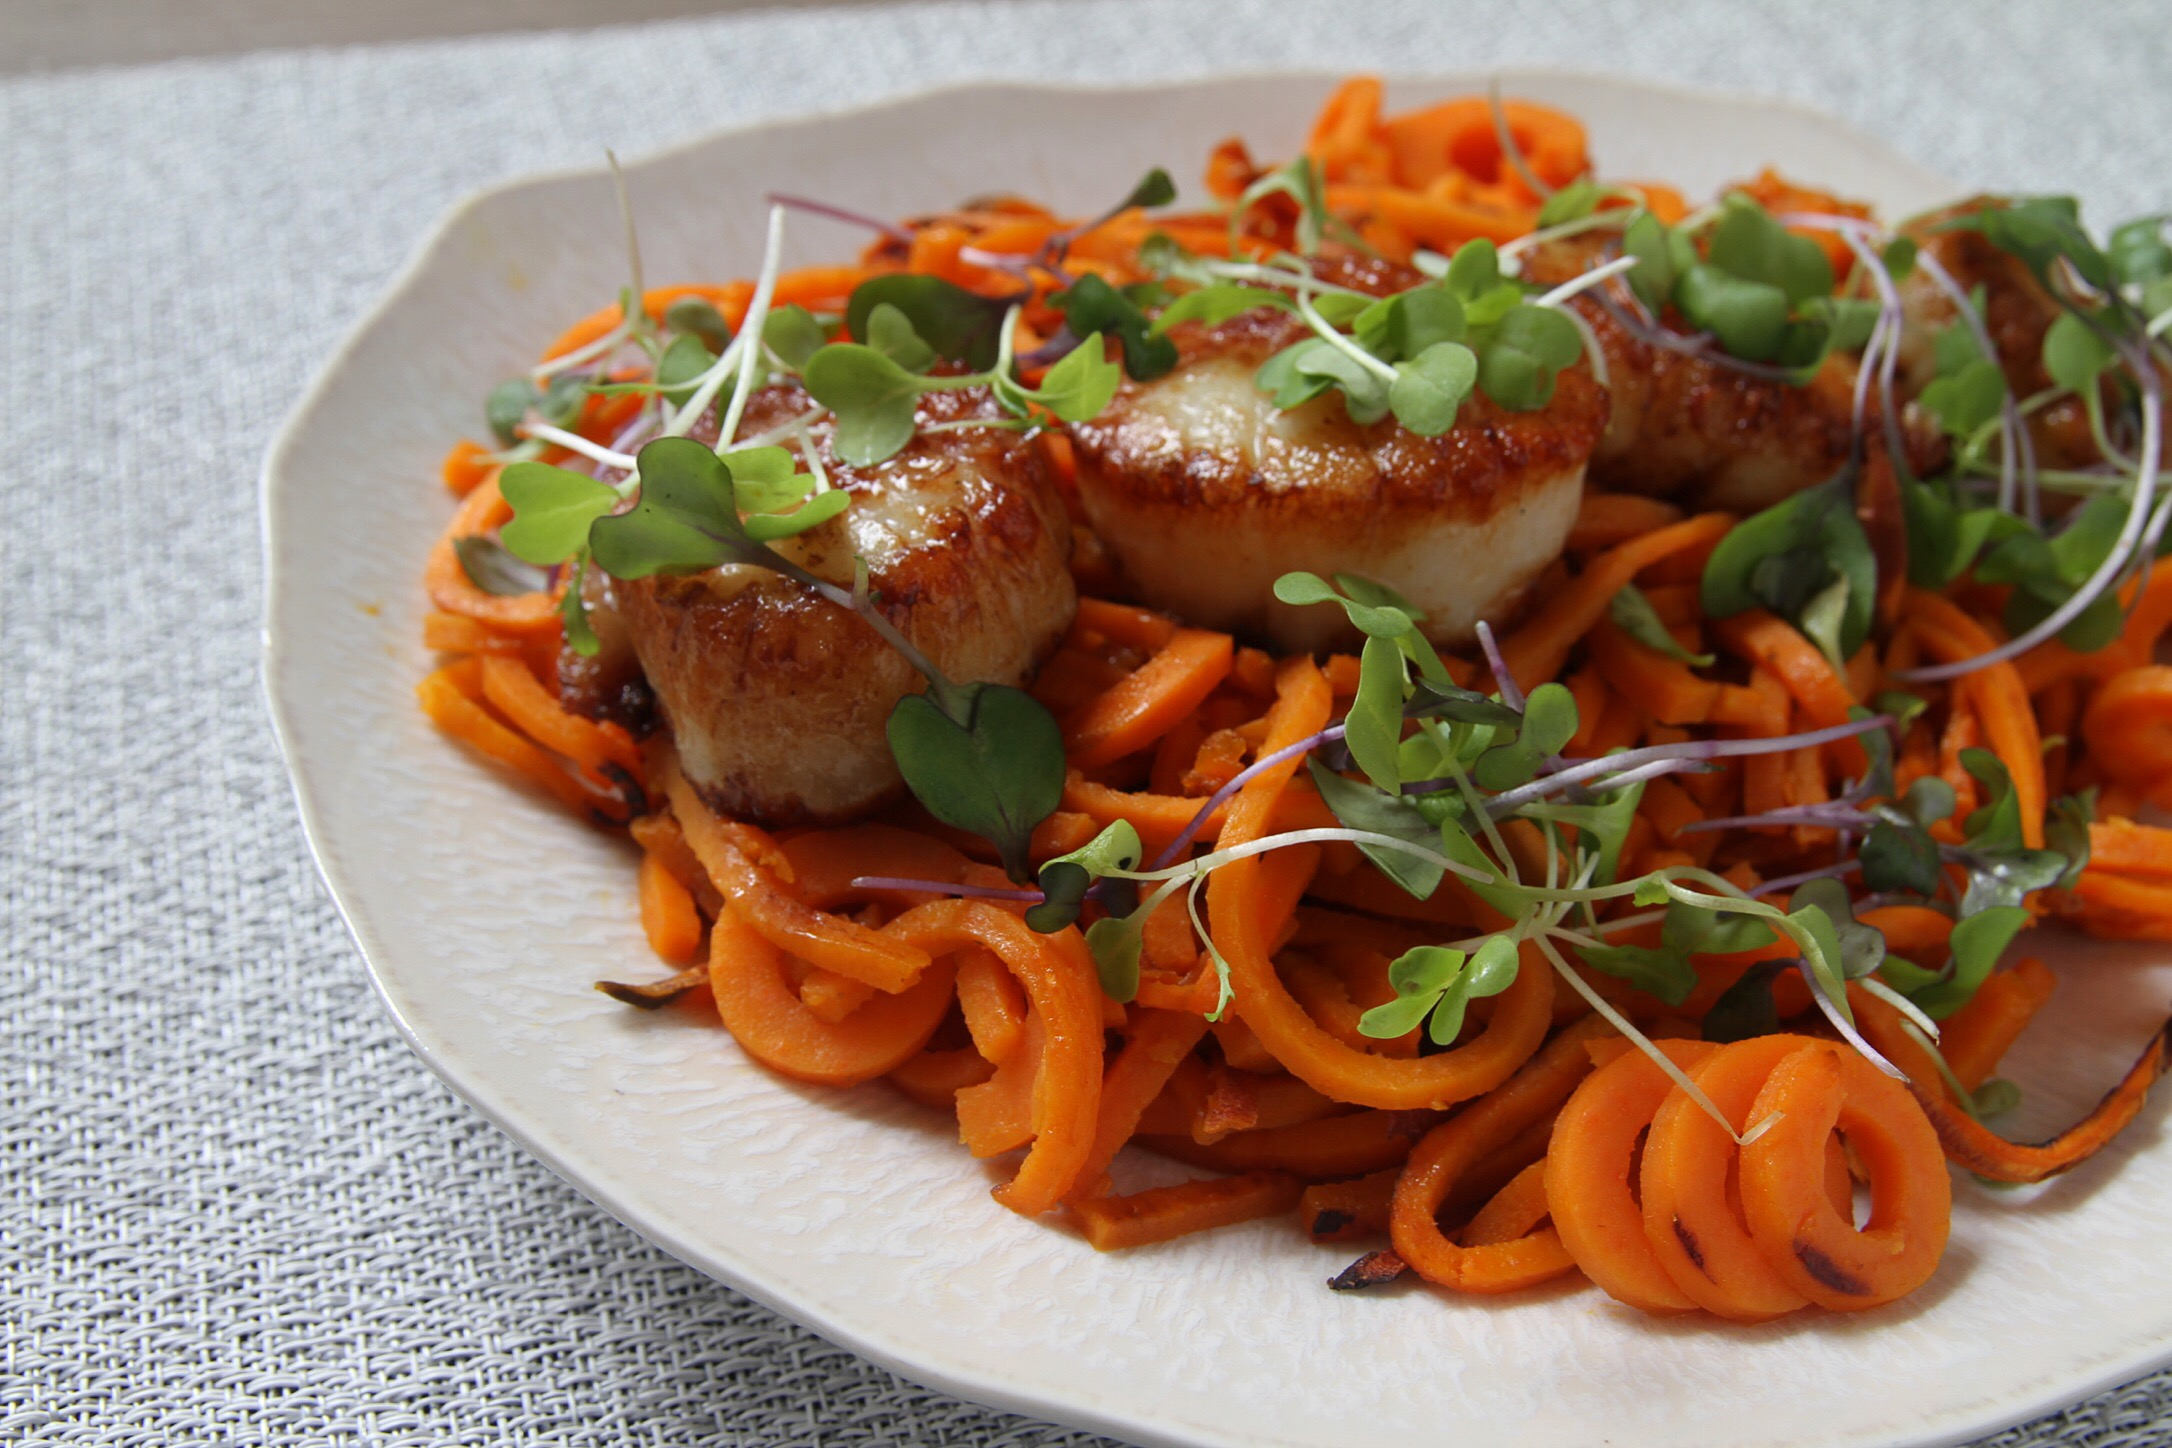 Seared sea scallops over sweet potato noodles, topped with local micro greens.